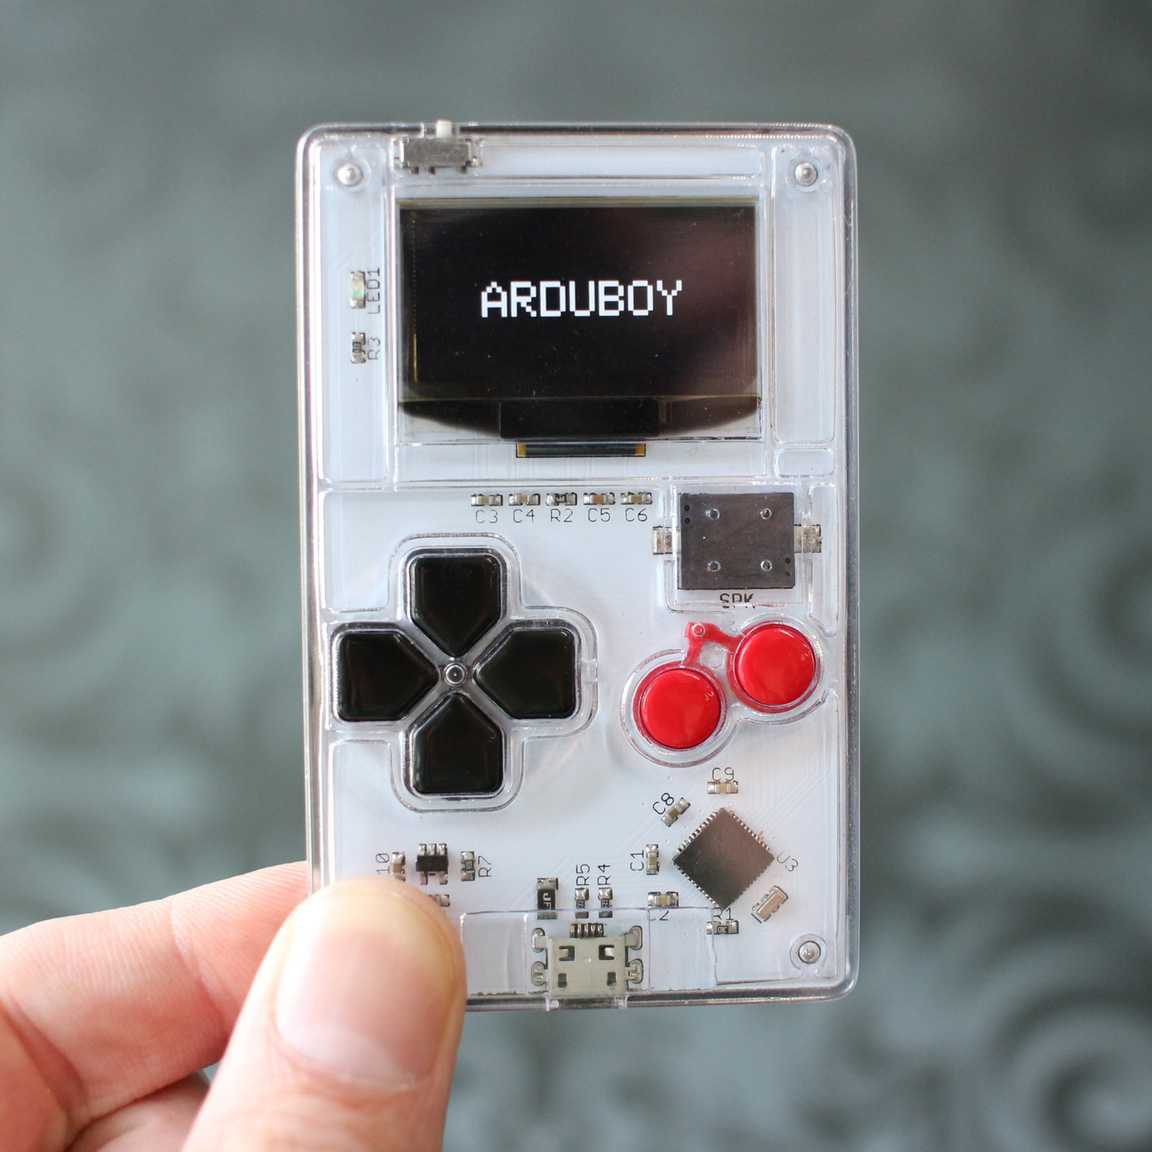 Arduboy: a credit card size game system with 8-bit look & feel!